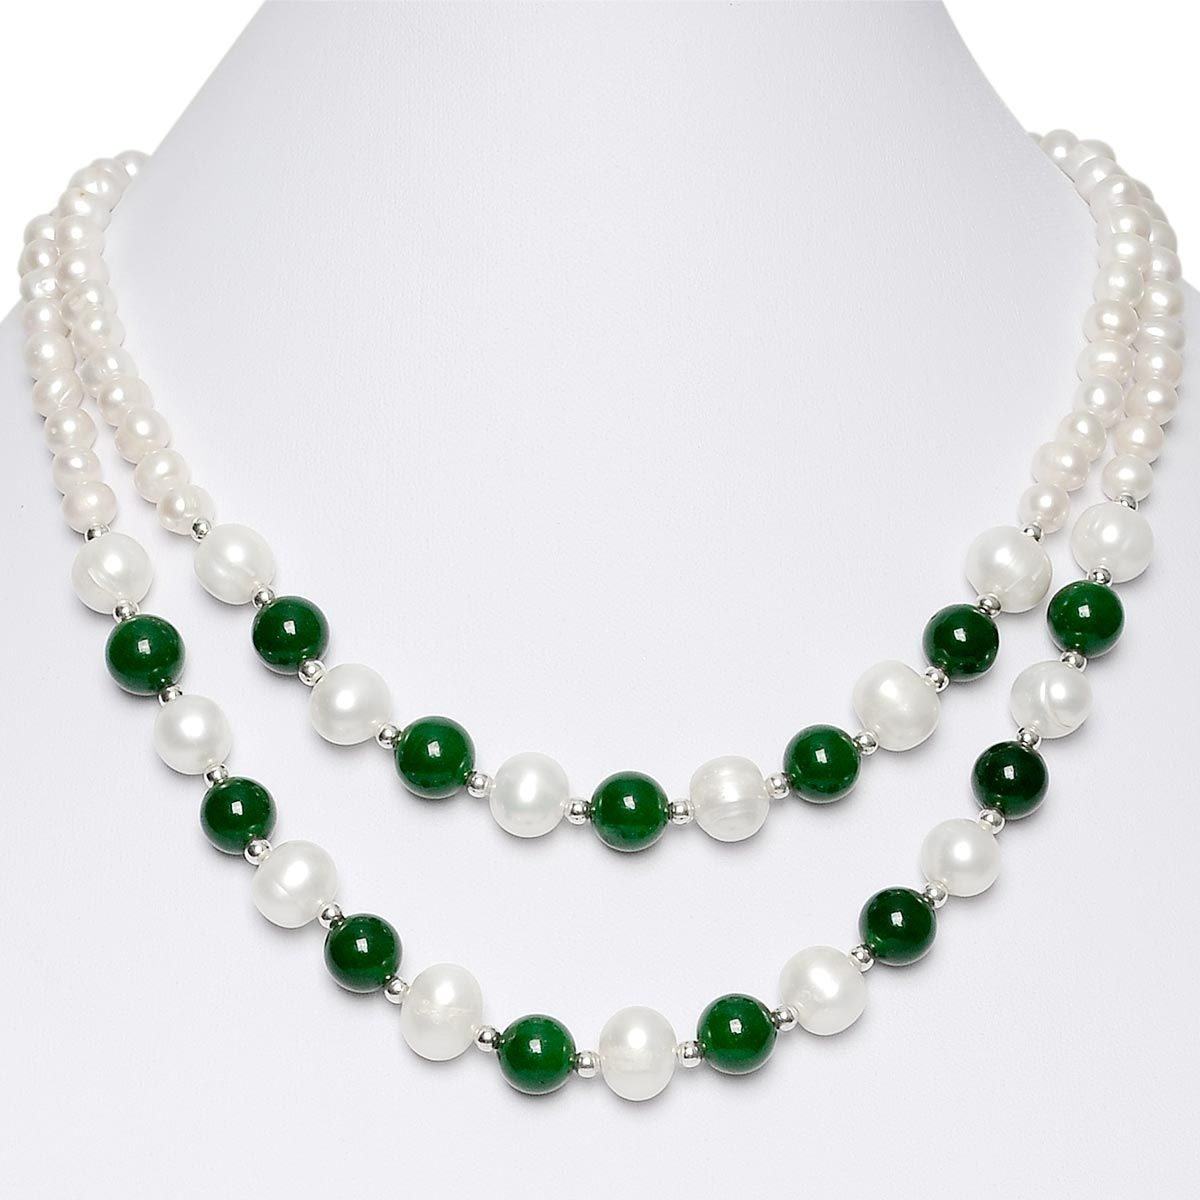 17 Inch White Freshwater Cultured Pearls Round Green Malaysia Jade Double Strand Necklace Throughout Most Up To Date Freshwater Cultured Pearls & Beads Necklaces (View 16 of 25)